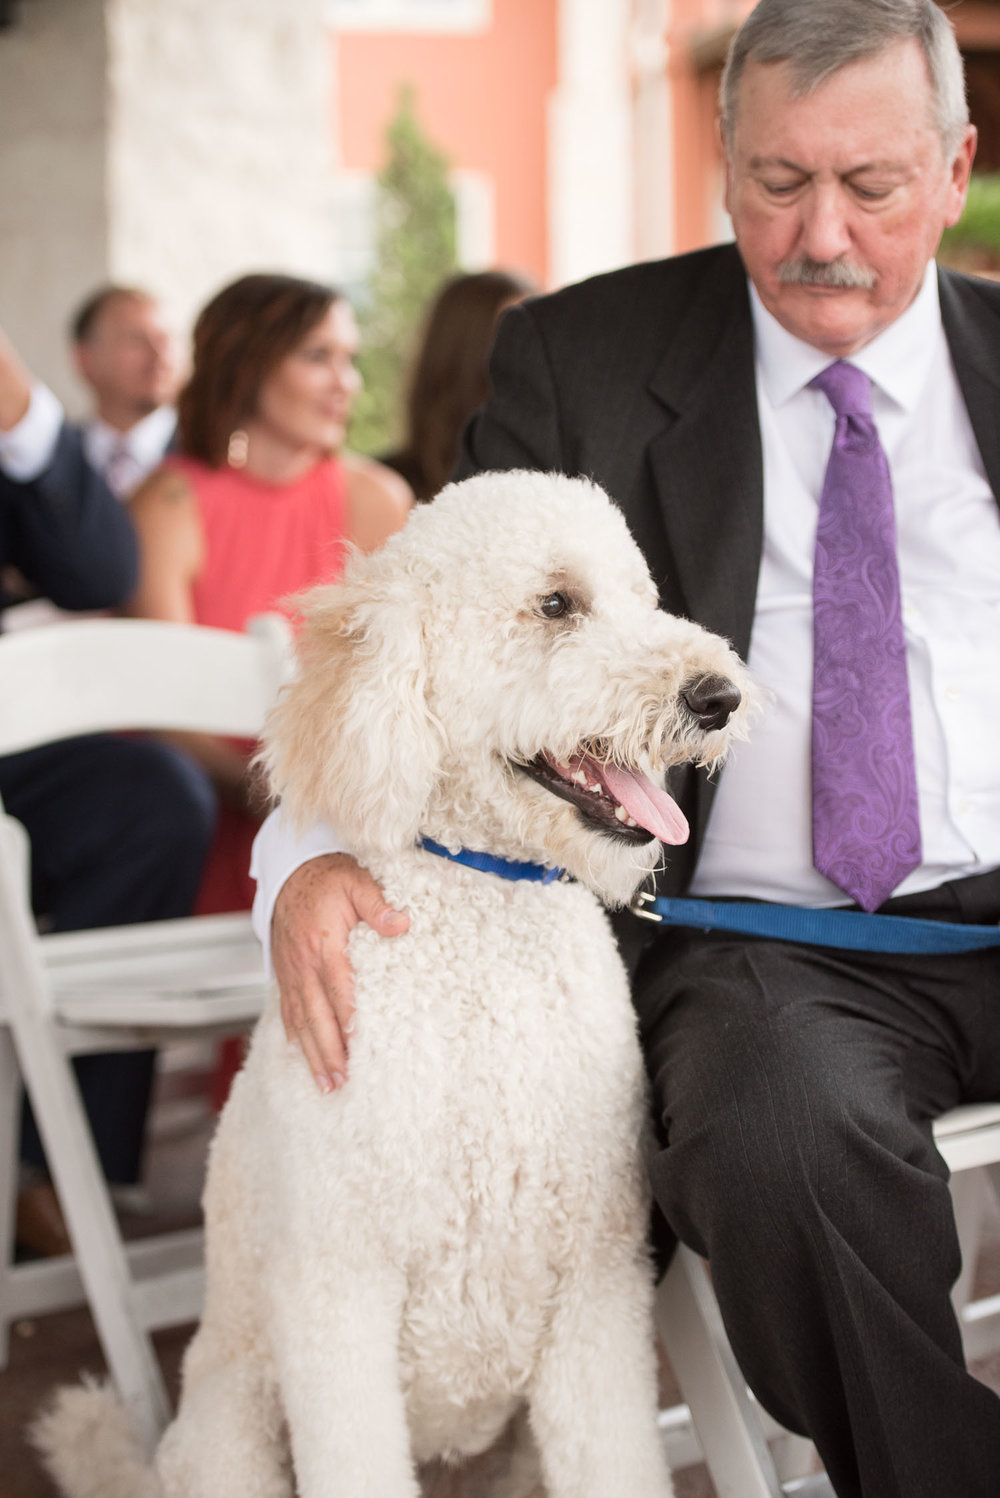 65 golden doodle at wedding ceremony.jpg